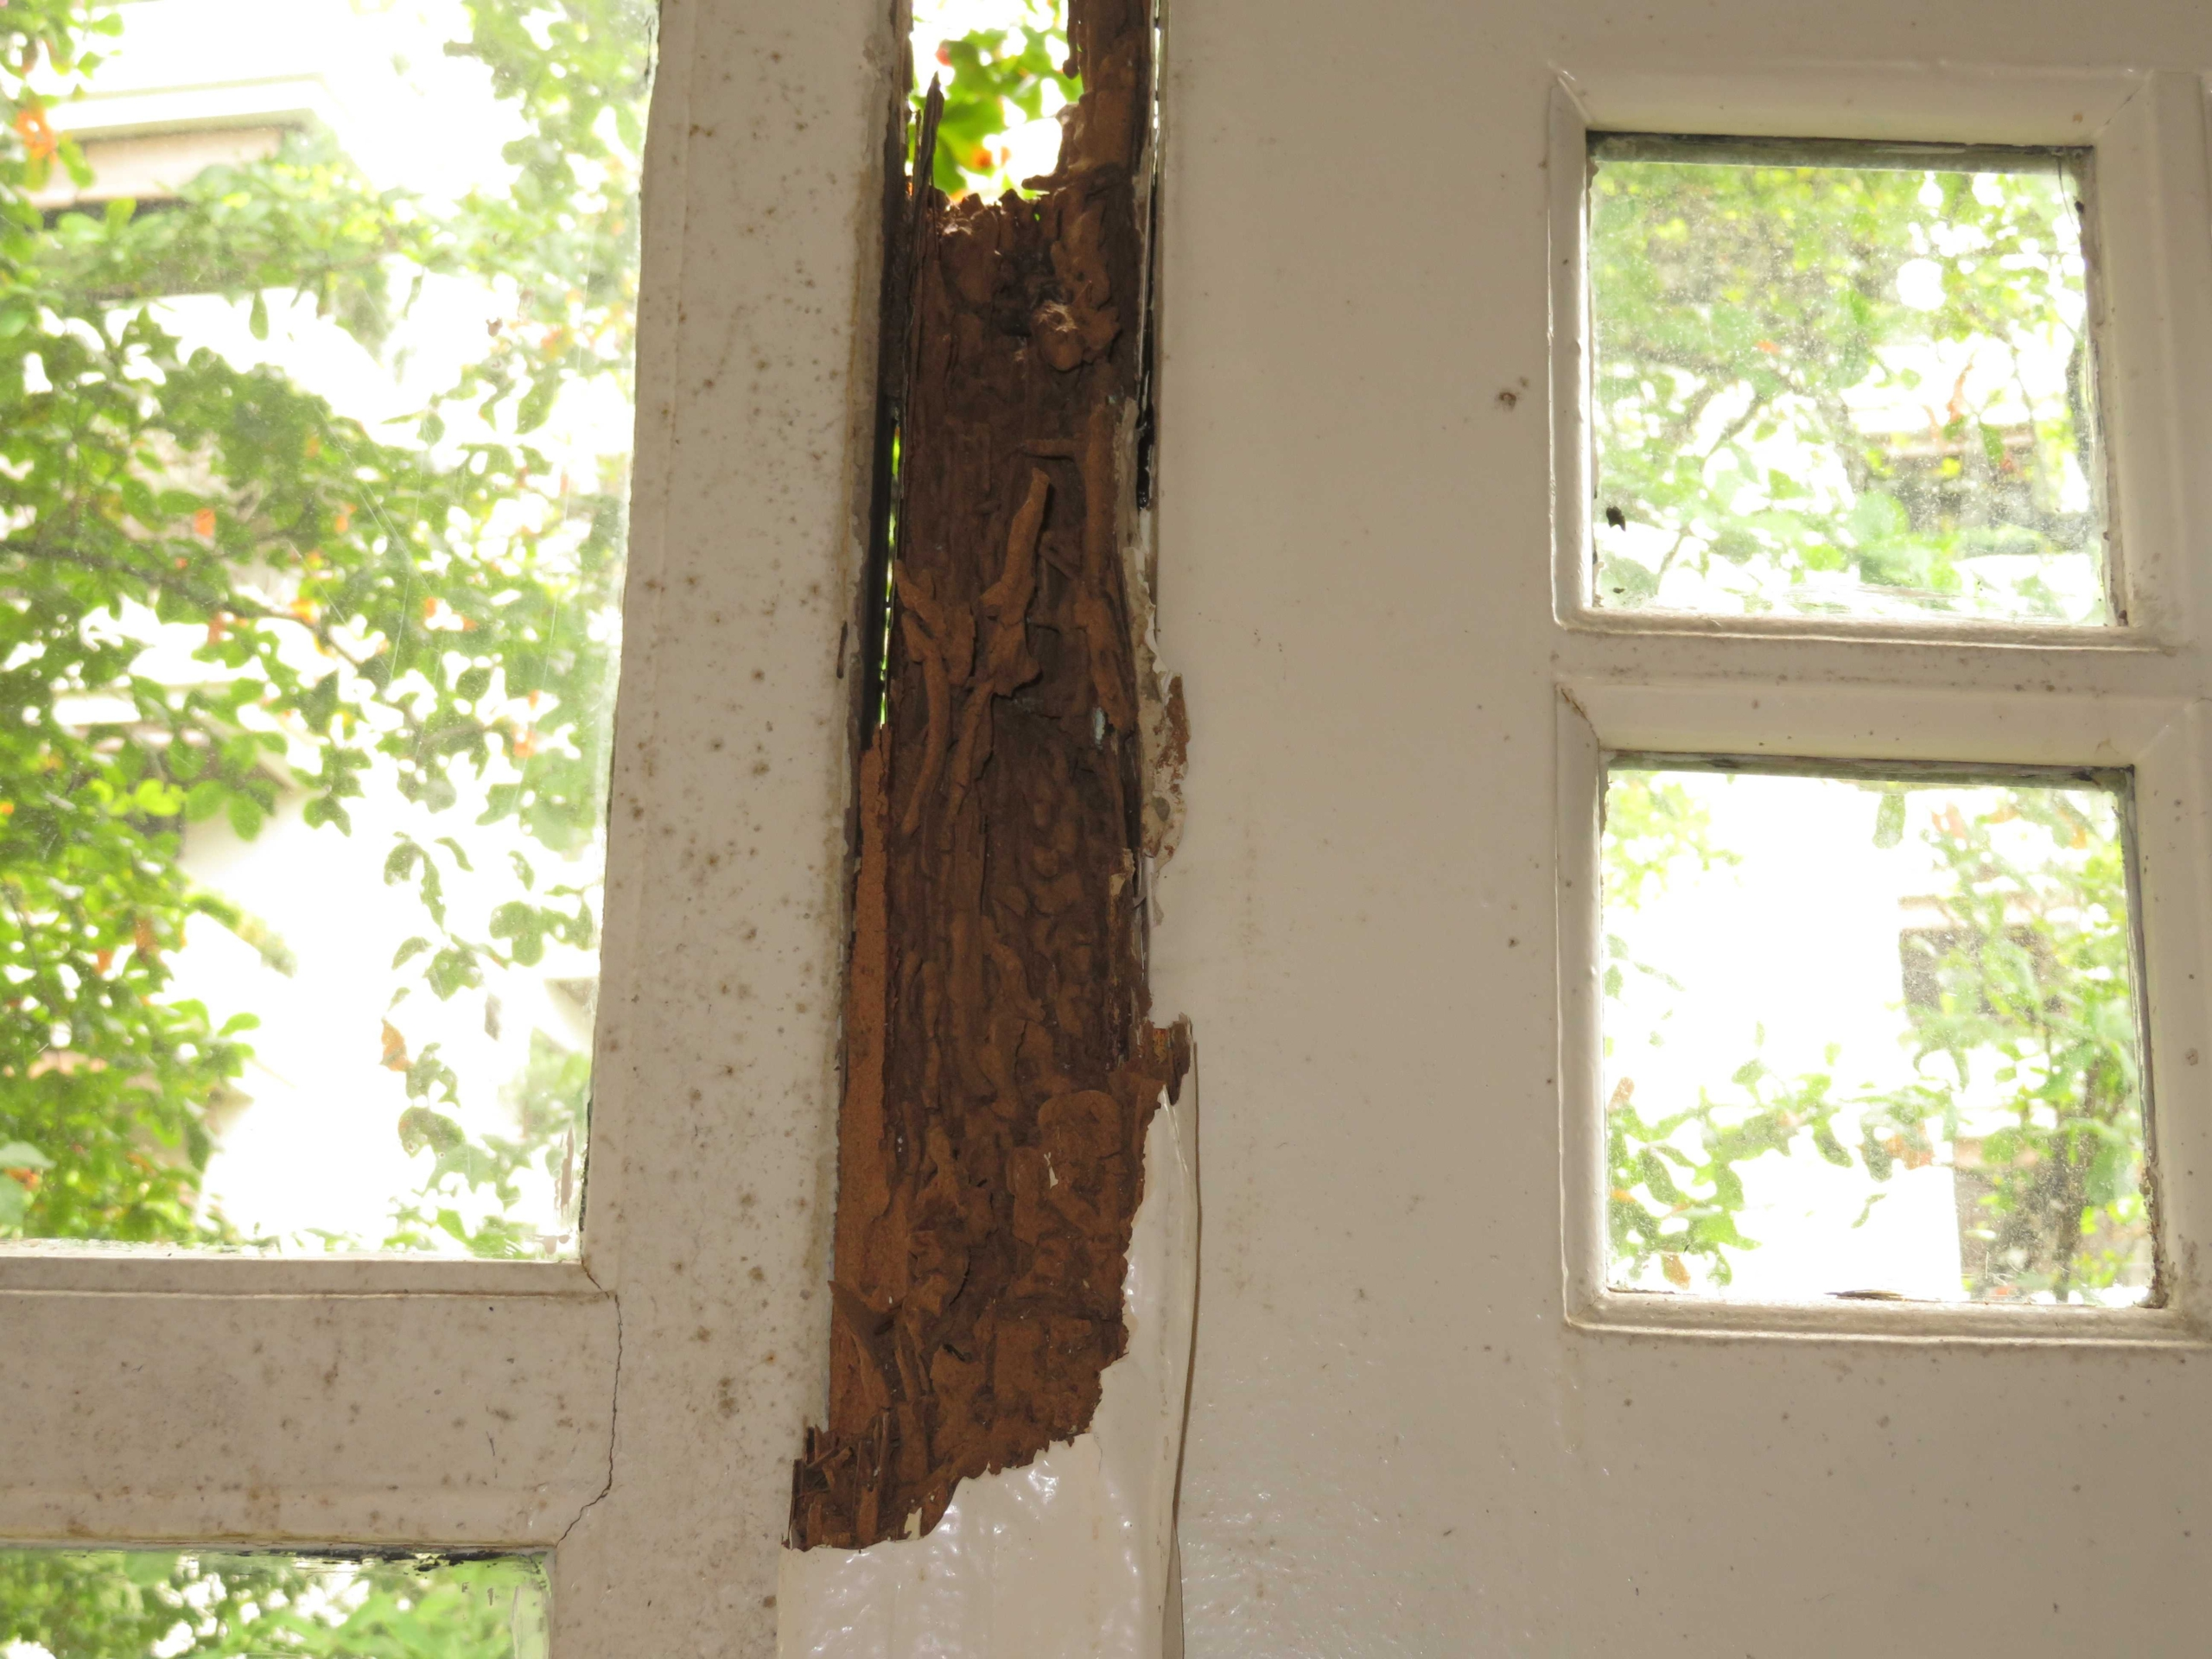 Wet rot and termite attack observed on window frame